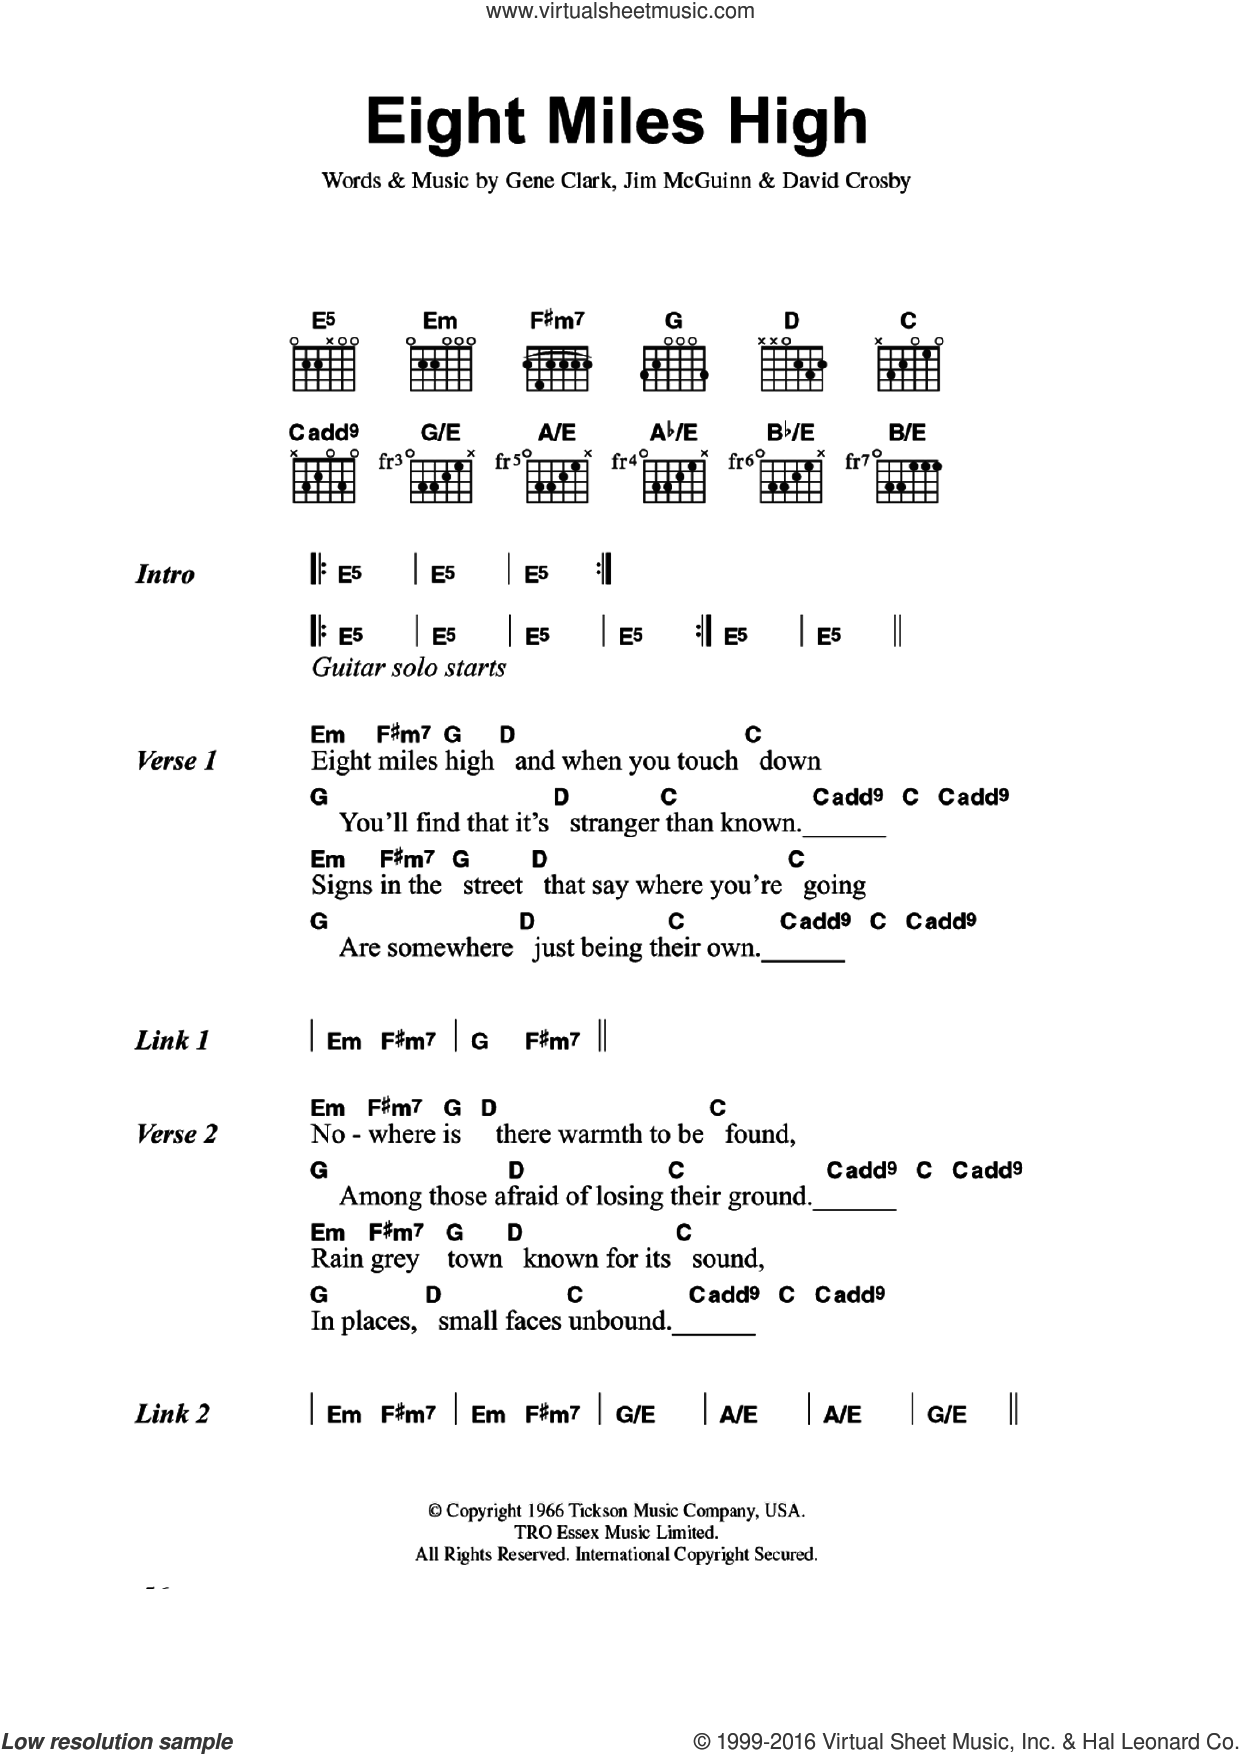 Eight Miles High sheet music for guitar (chords) by The Byrds, David Crosby, Gene Clark and Jim McGuinn, intermediate